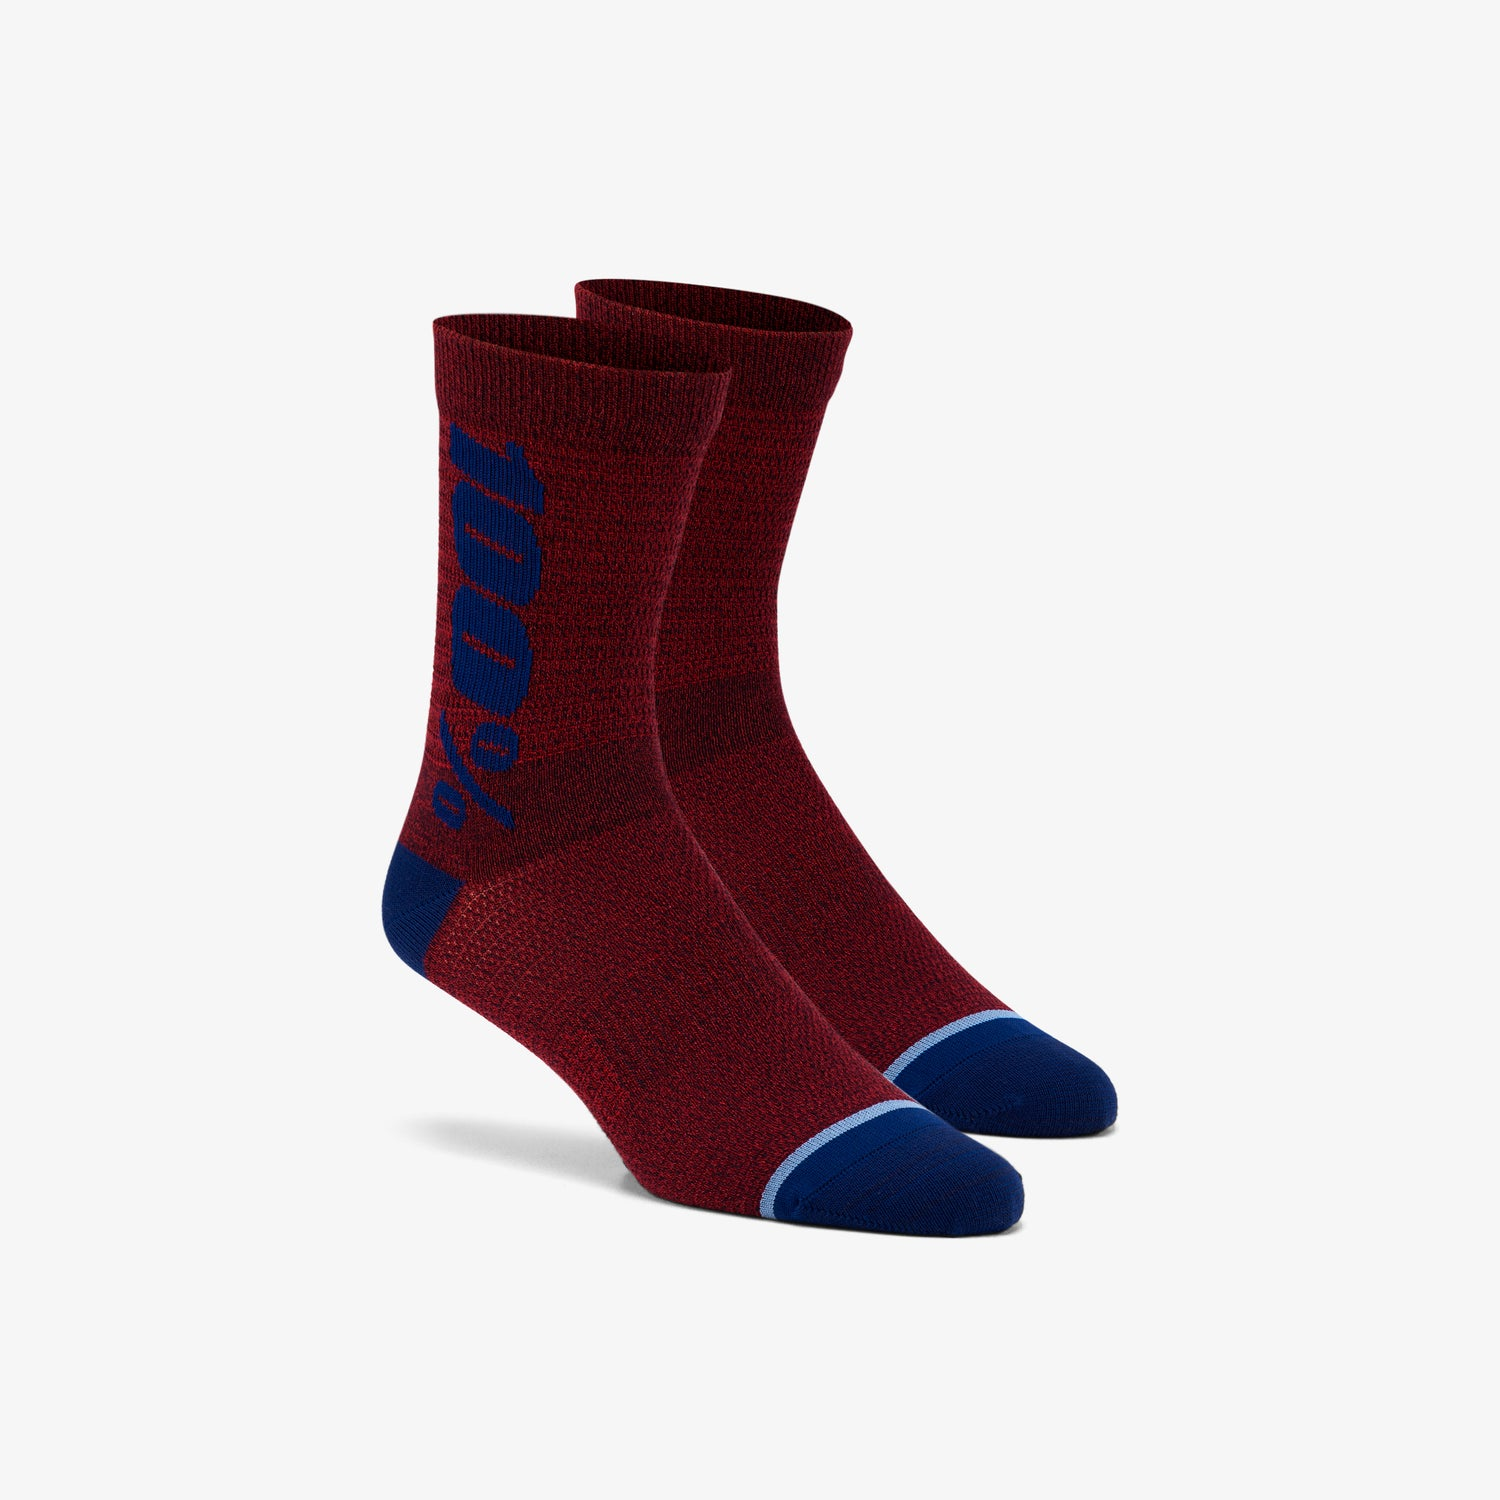 RYTHYM Merino Wool Performance Socks - Brick